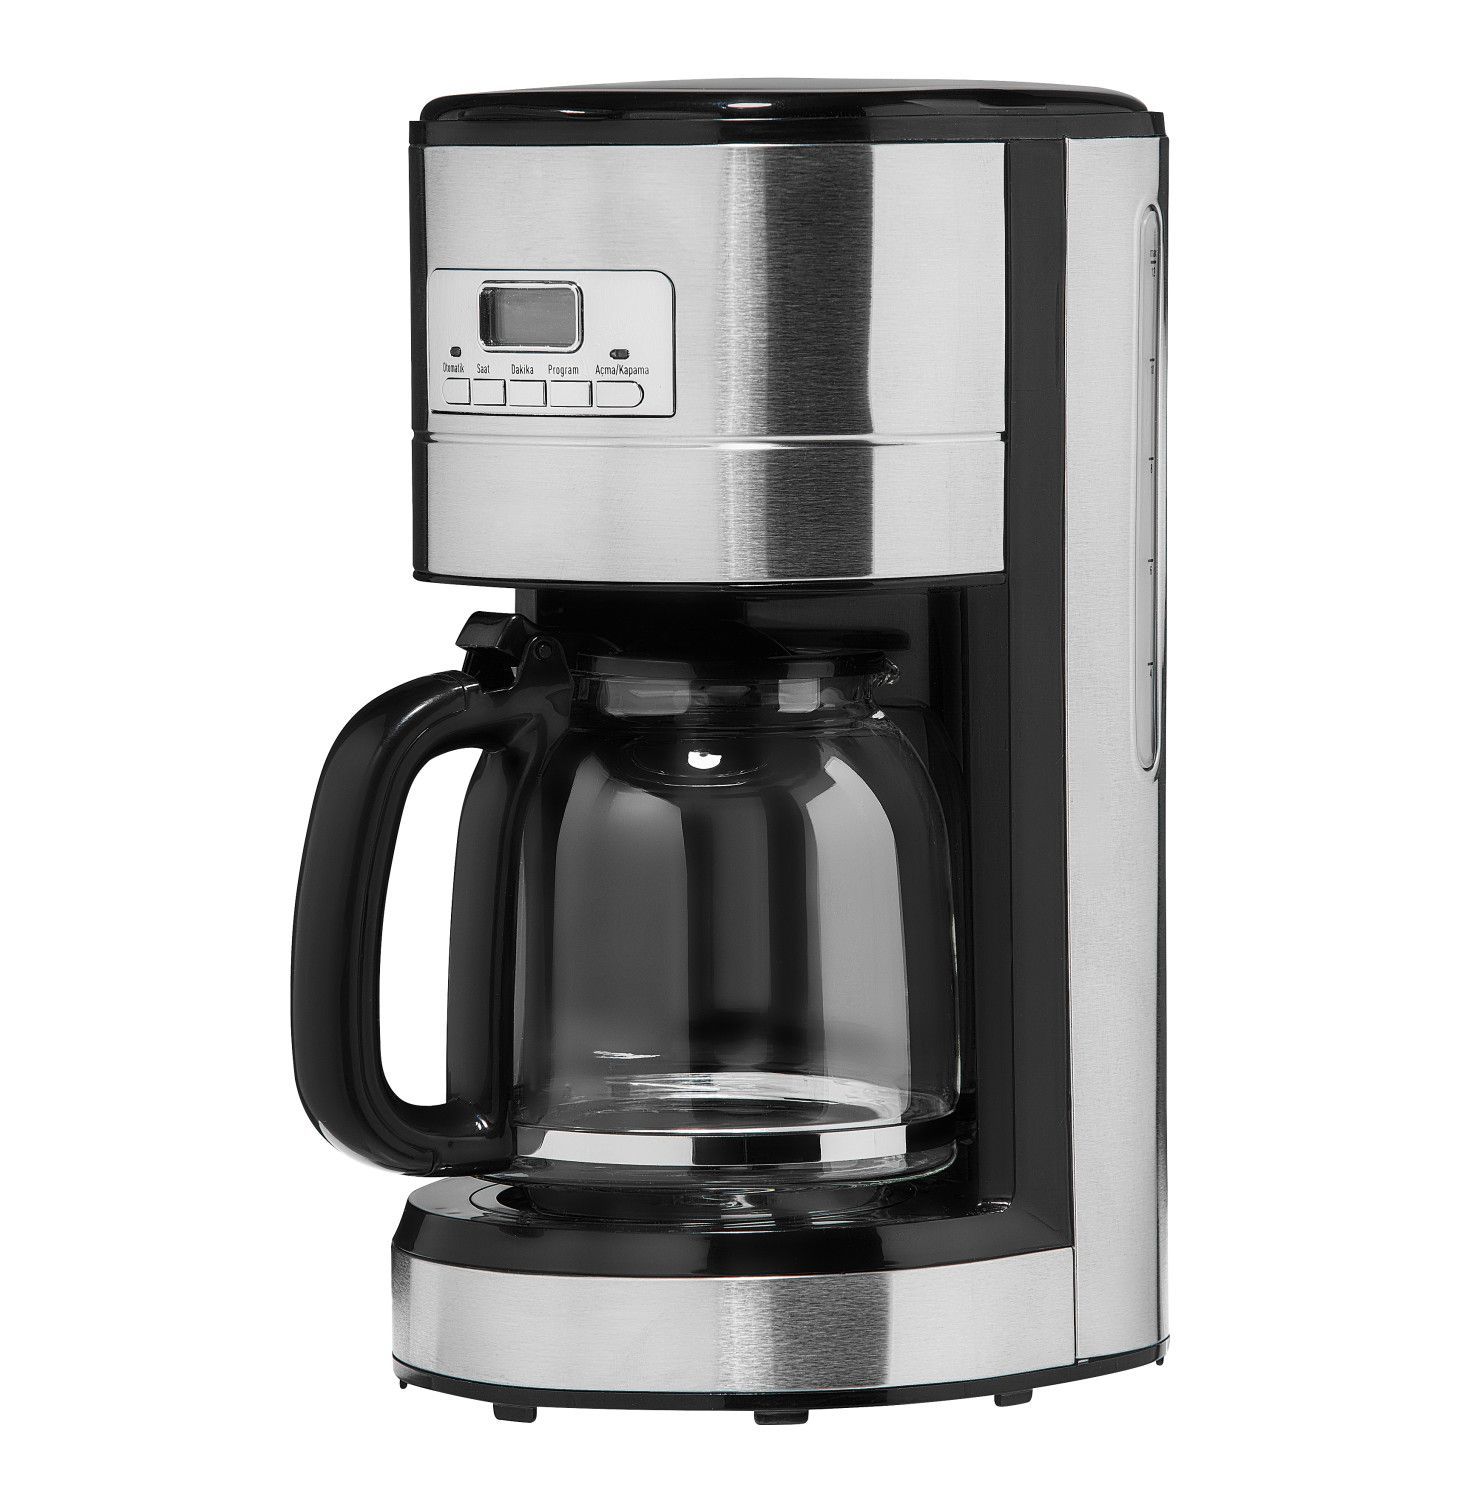 DEFY Drip Filter Coffee Maker Stainless steel Lowest